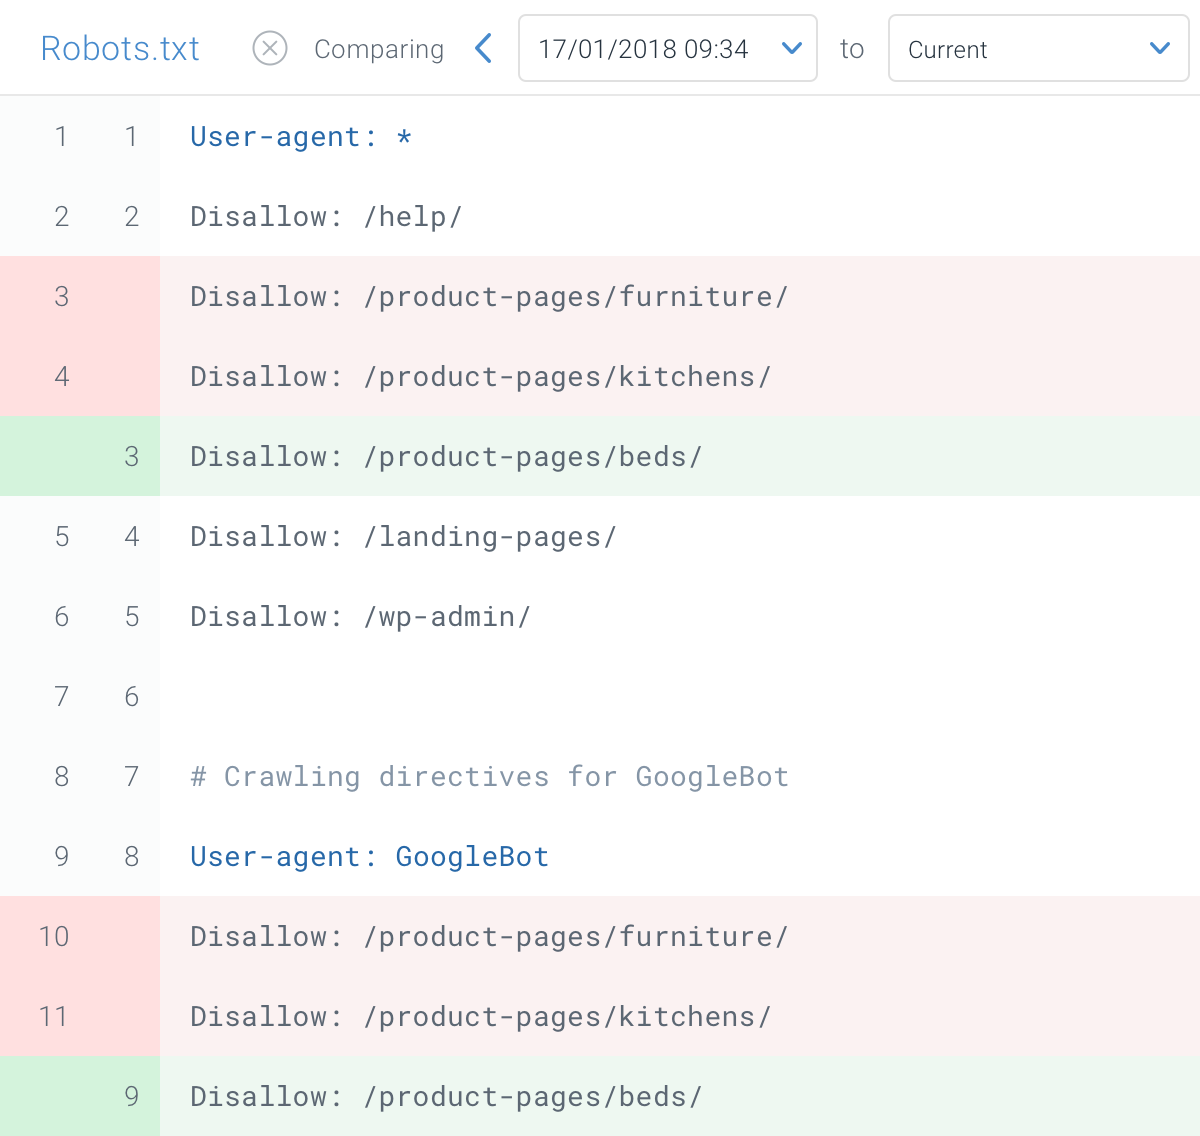 ContentKing - robots.txt change tracking